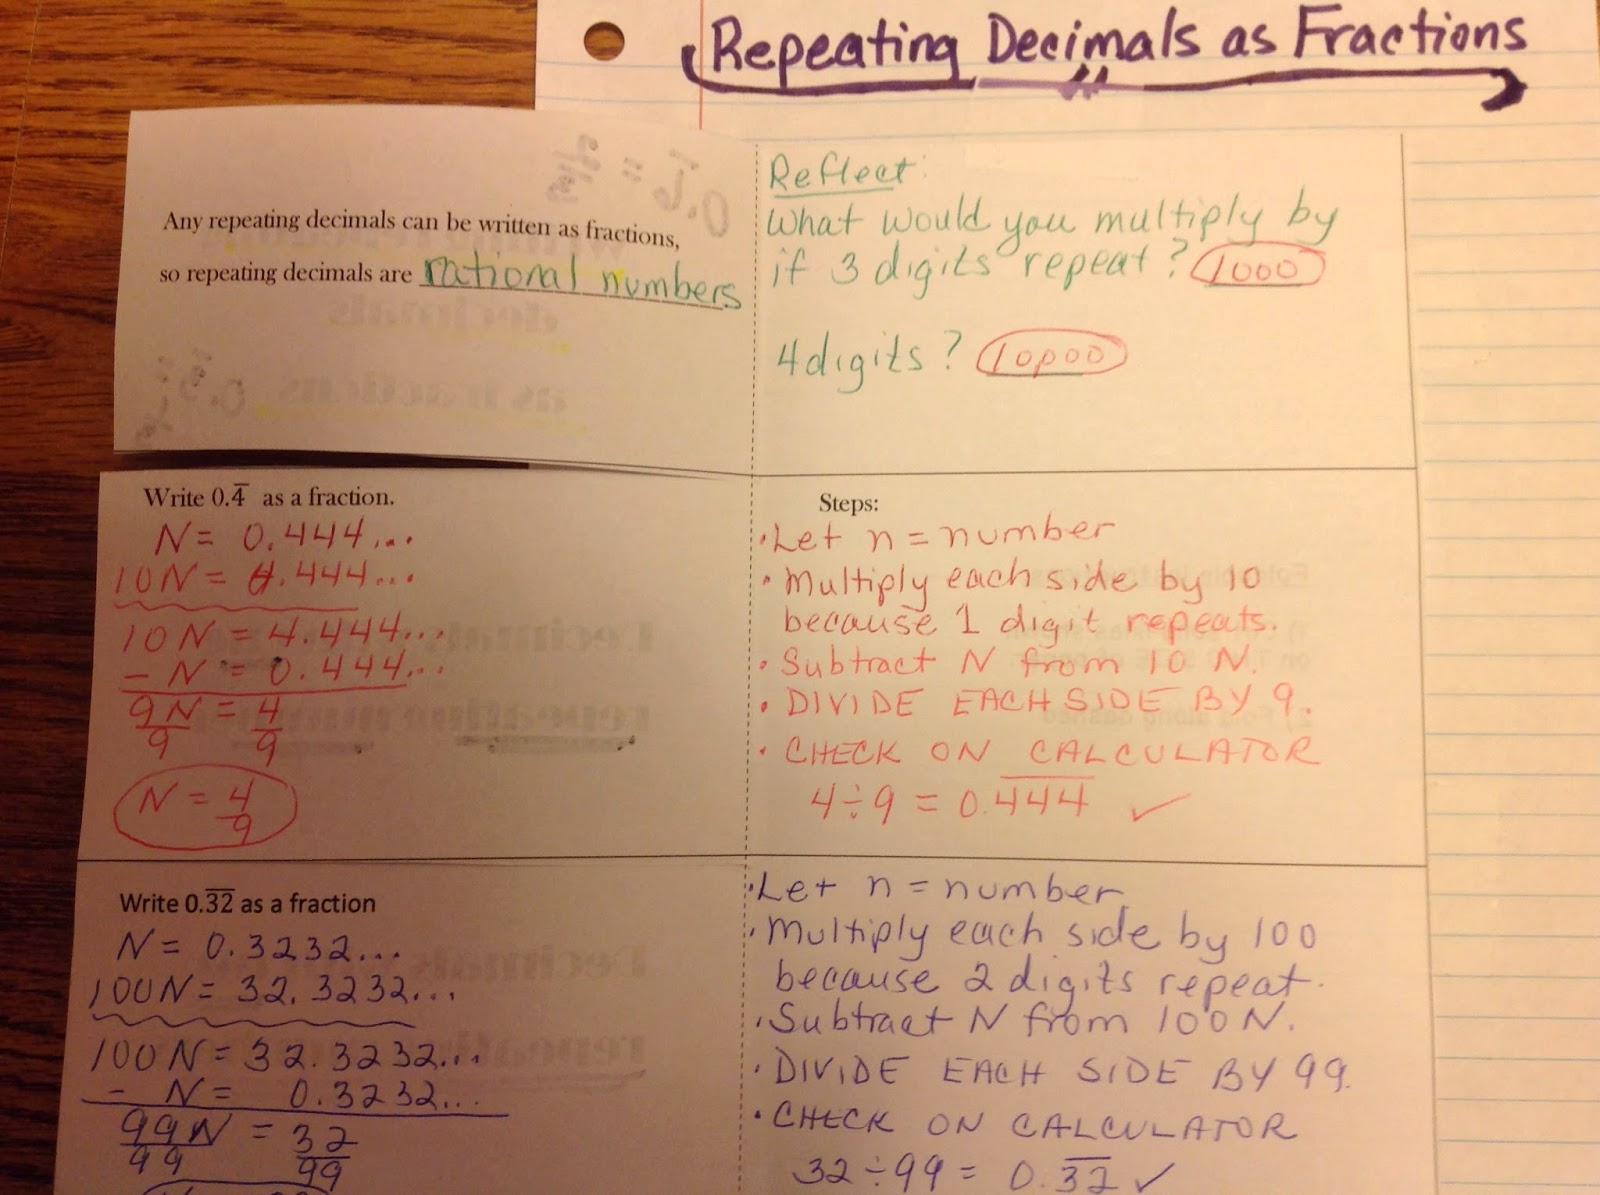 writing repeating decimals as fractions